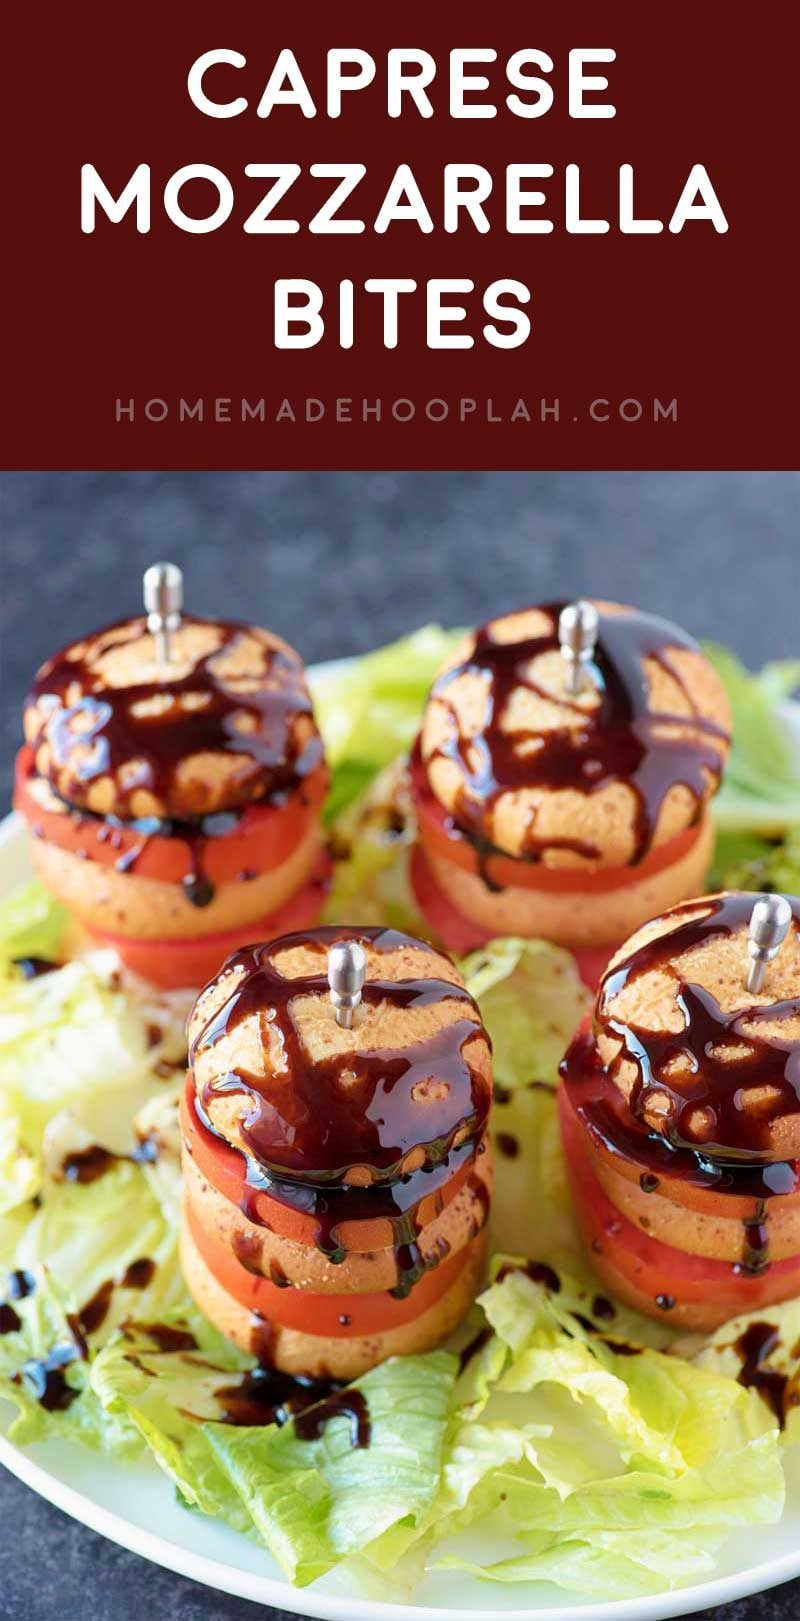 Caprese Mozzarella Bites! Take standard caprese to the next level with Farm Rich's Mozzarella Bites stacked with thick-sliced roma tomatoes and drizzled with balsamic glaze. #ad @FarmRichSnacks | HomemadeHooplah.com